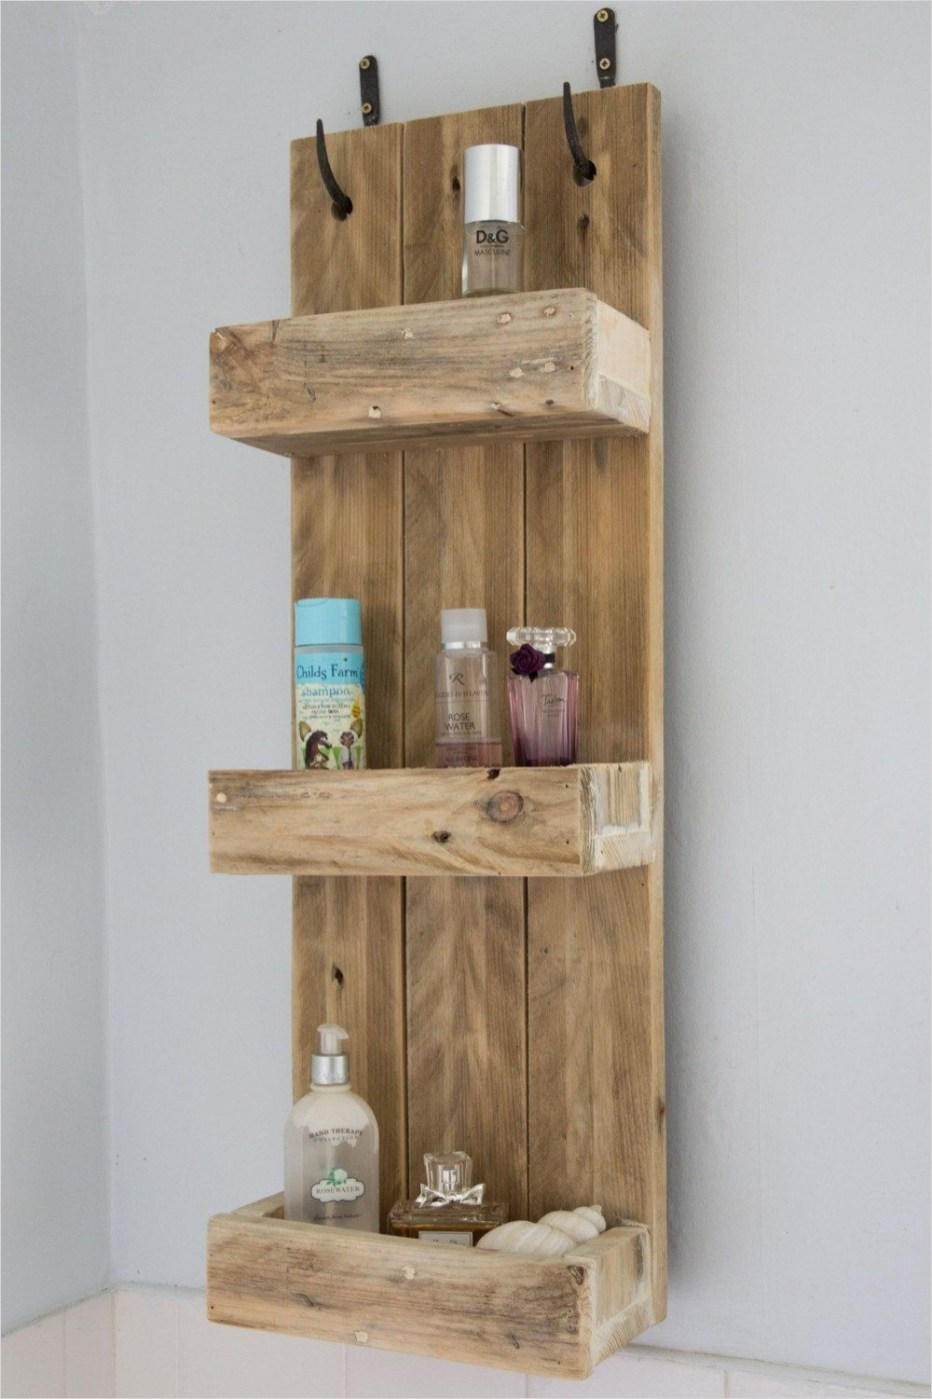 44 Creative Ideas Rustic Bathroom Walls Shelf 55 Rustic Bathroom Shelves Made From Reclaimed Pallet Wood 2